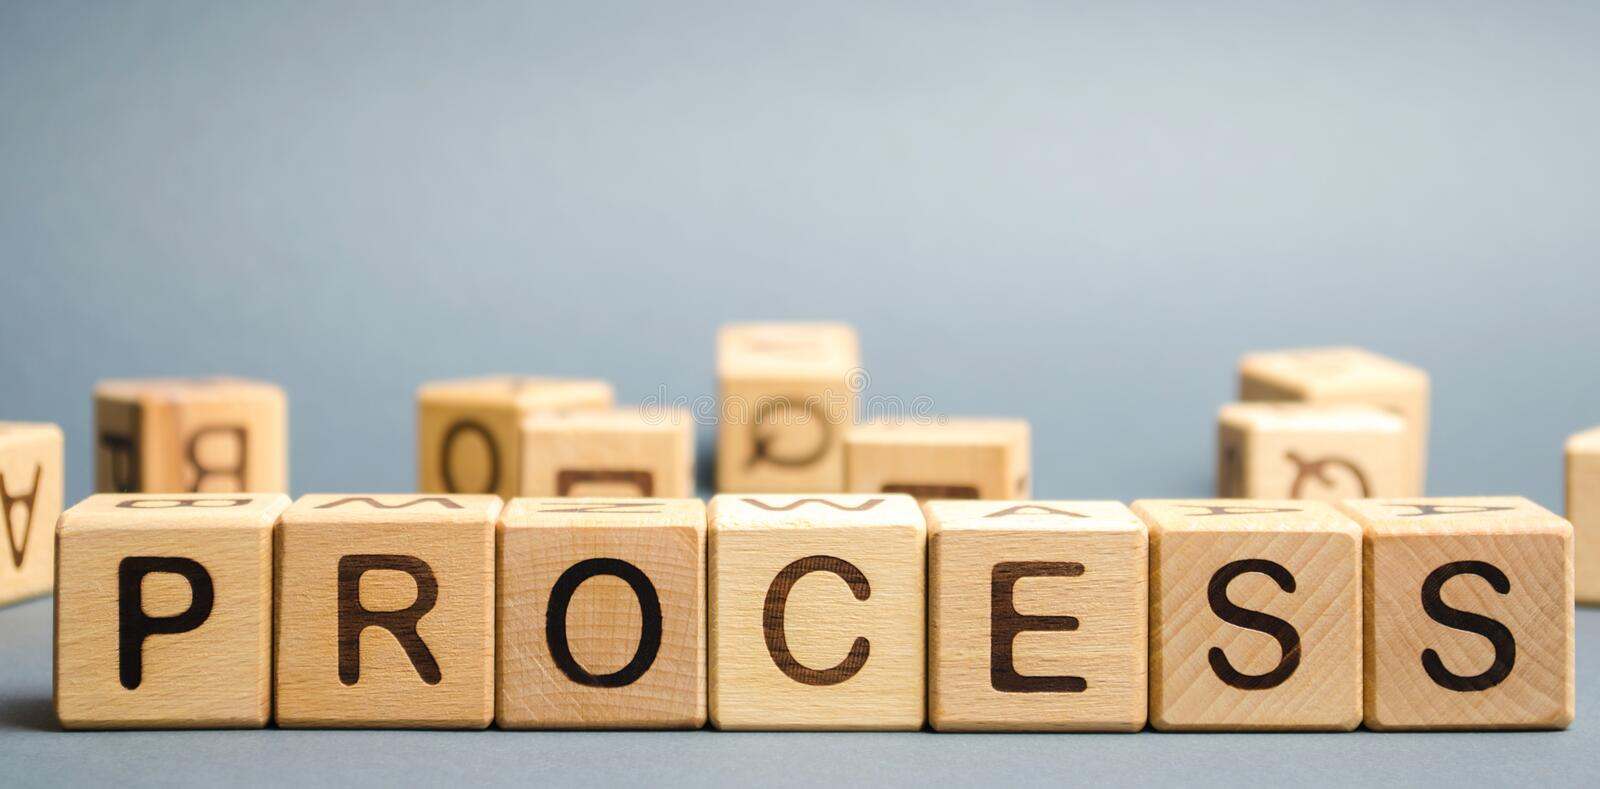 Wooden blocks with the word Process. Business management concept. Litigation and technological processes.  royalty free stock photo